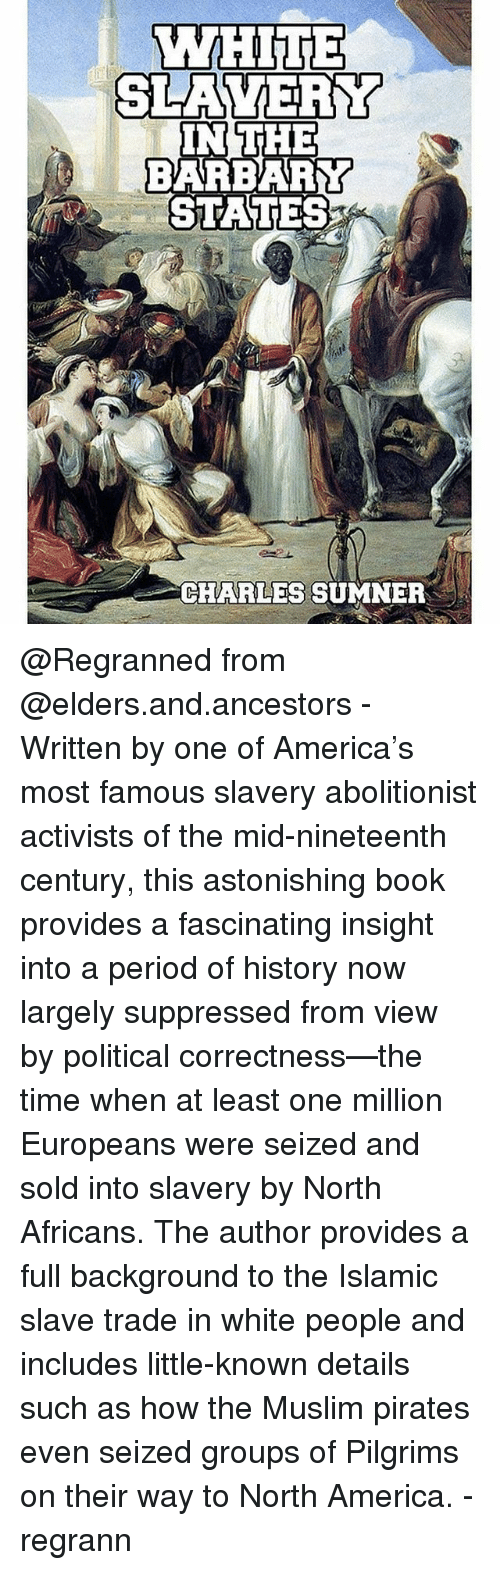 America, Memes, and Muslim: IN THE  BARBARY  STATES  CHARLES SUMNER @Regranned from @elders.and.ancestors - Written by one of America's most famous slavery abolitionist activists of the mid-nineteenth century, this astonishing book provides a fascinating insight into a period of history now largely suppressed from view by political correctness—the time when at least one million Europeans were seized and sold into slavery by North Africans. The author provides a full background to the Islamic slave trade in white people and includes little-known details such as how the Muslim pirates even seized groups of Pilgrims on their way to North America. - regrann